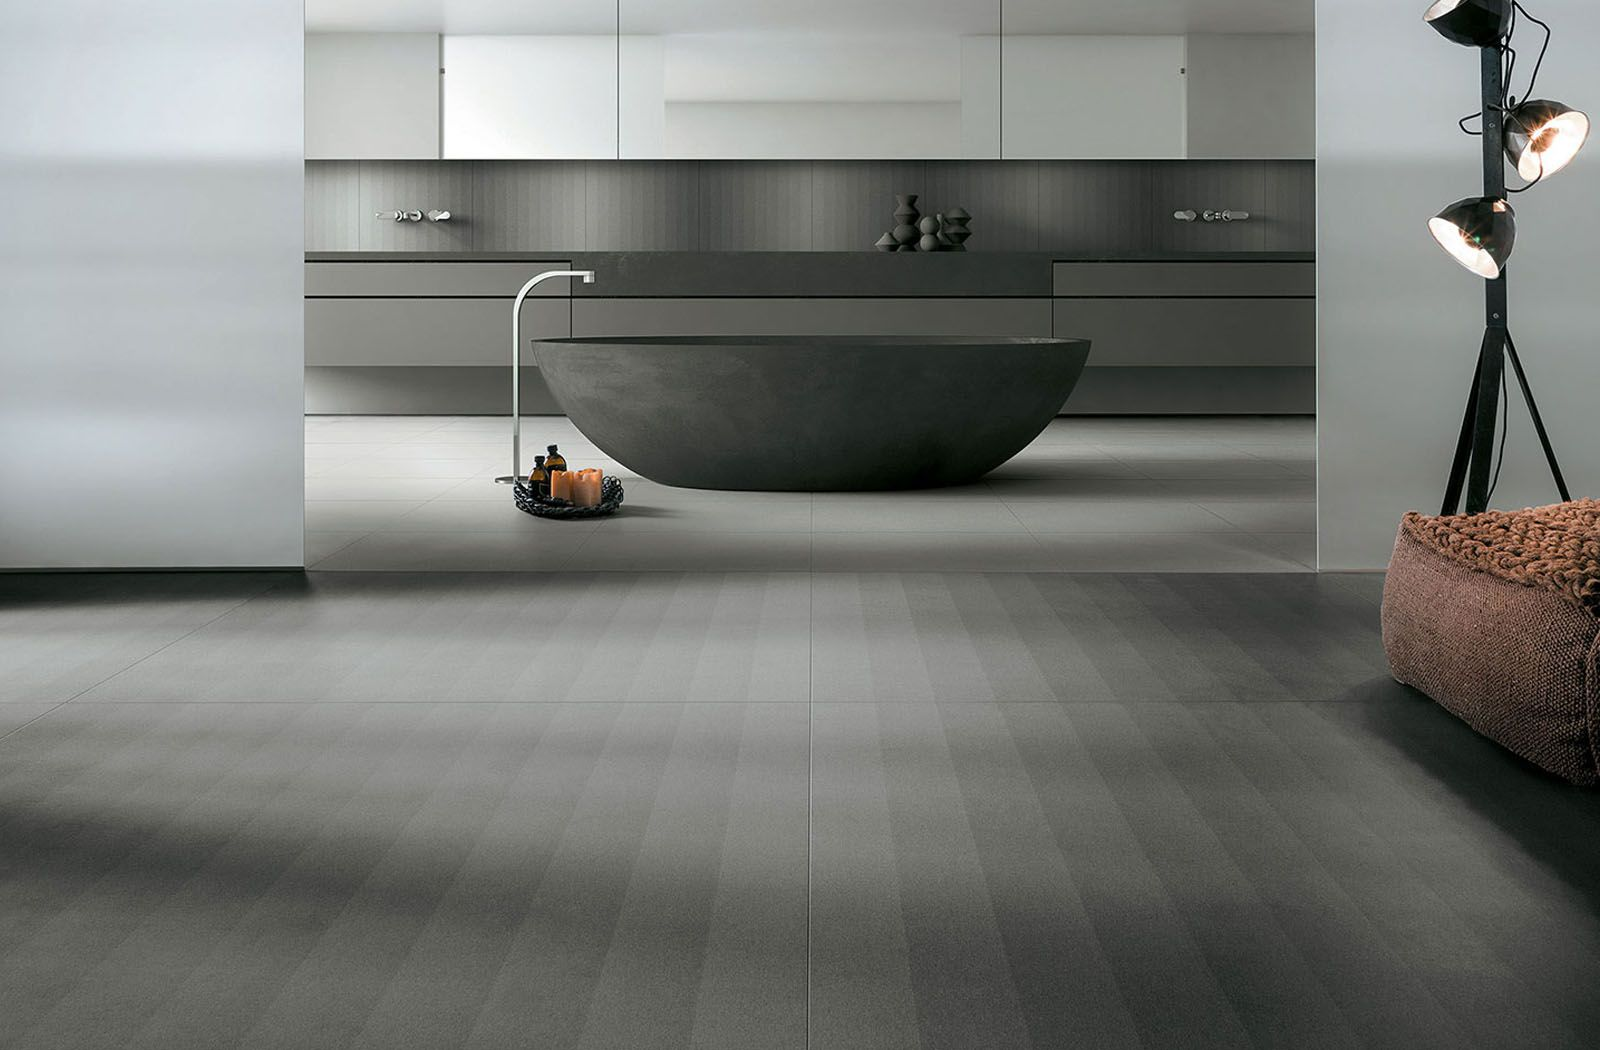 Dark Elegant Ombre Bathroom Floor From Transition Tile Collection